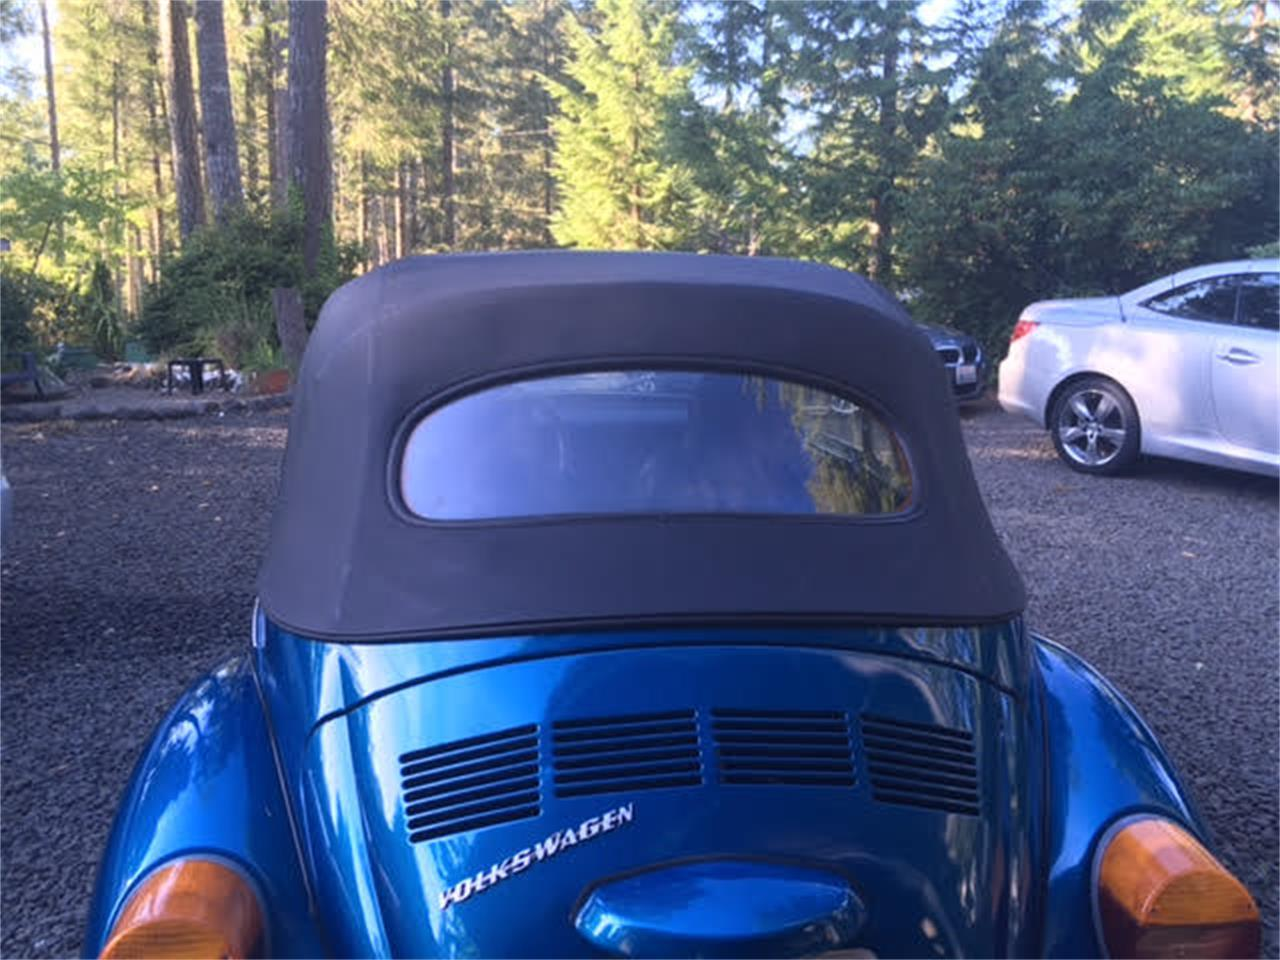 1974 Volkswagen Beetle (CC-1022377) for sale in Shelton, Washington